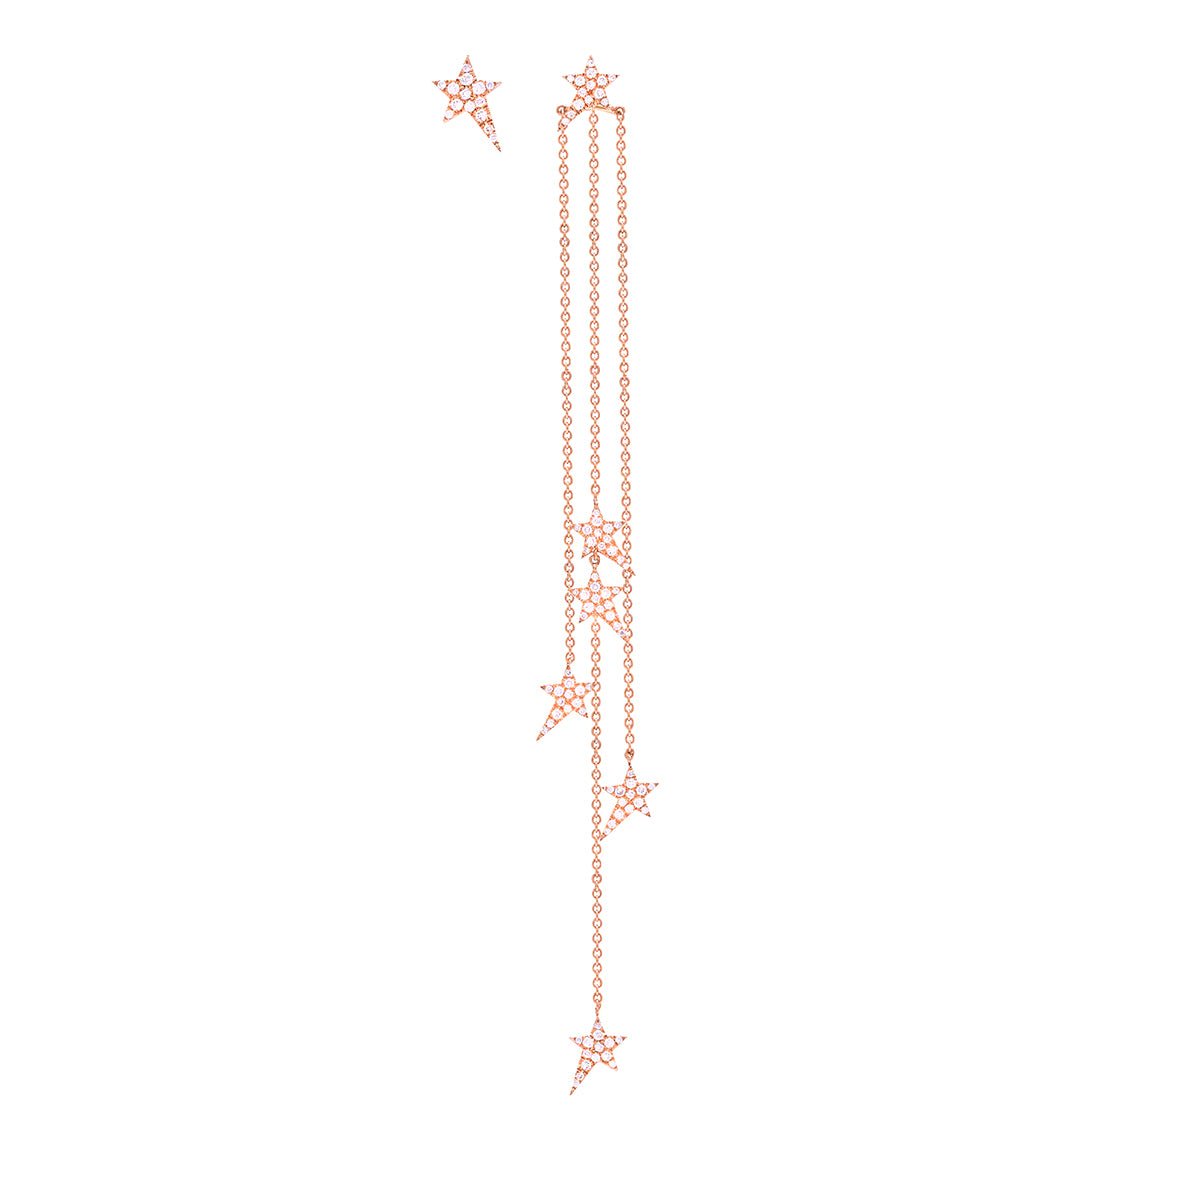 Asymmetric Star Chain Earrings